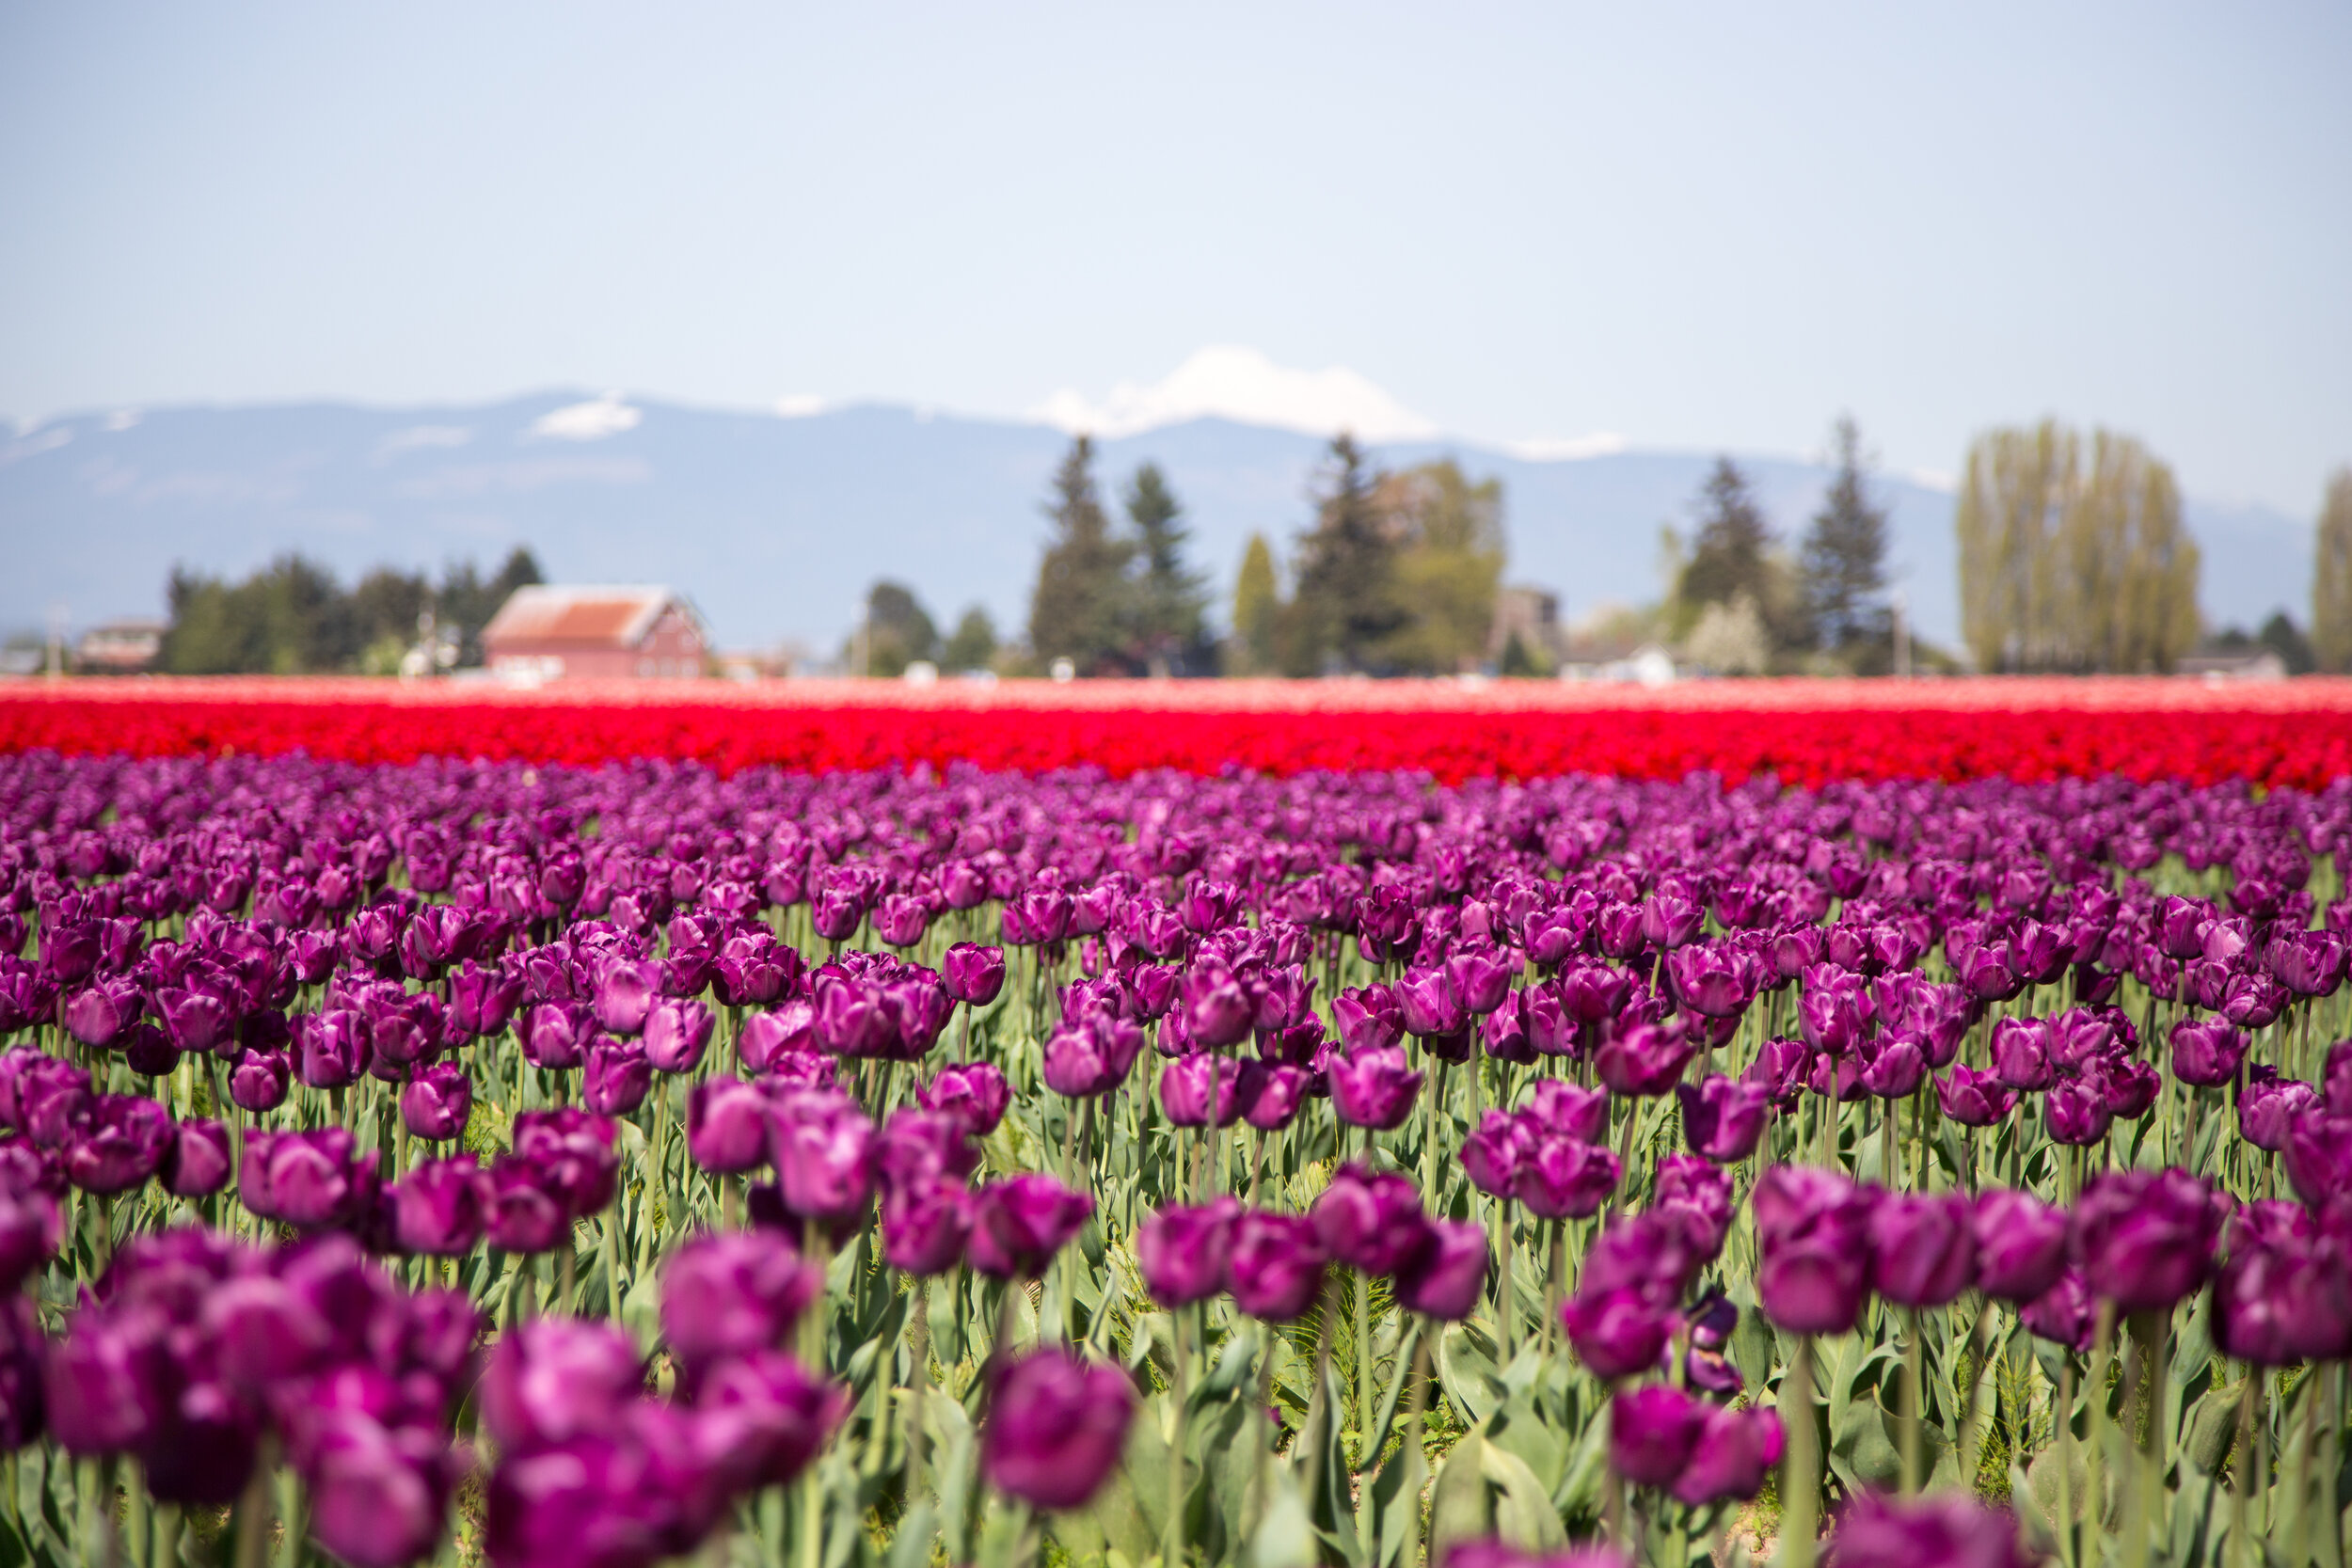 The Skagit Valley Tulip Festival draws people from all over the world and is held from April 1-30.